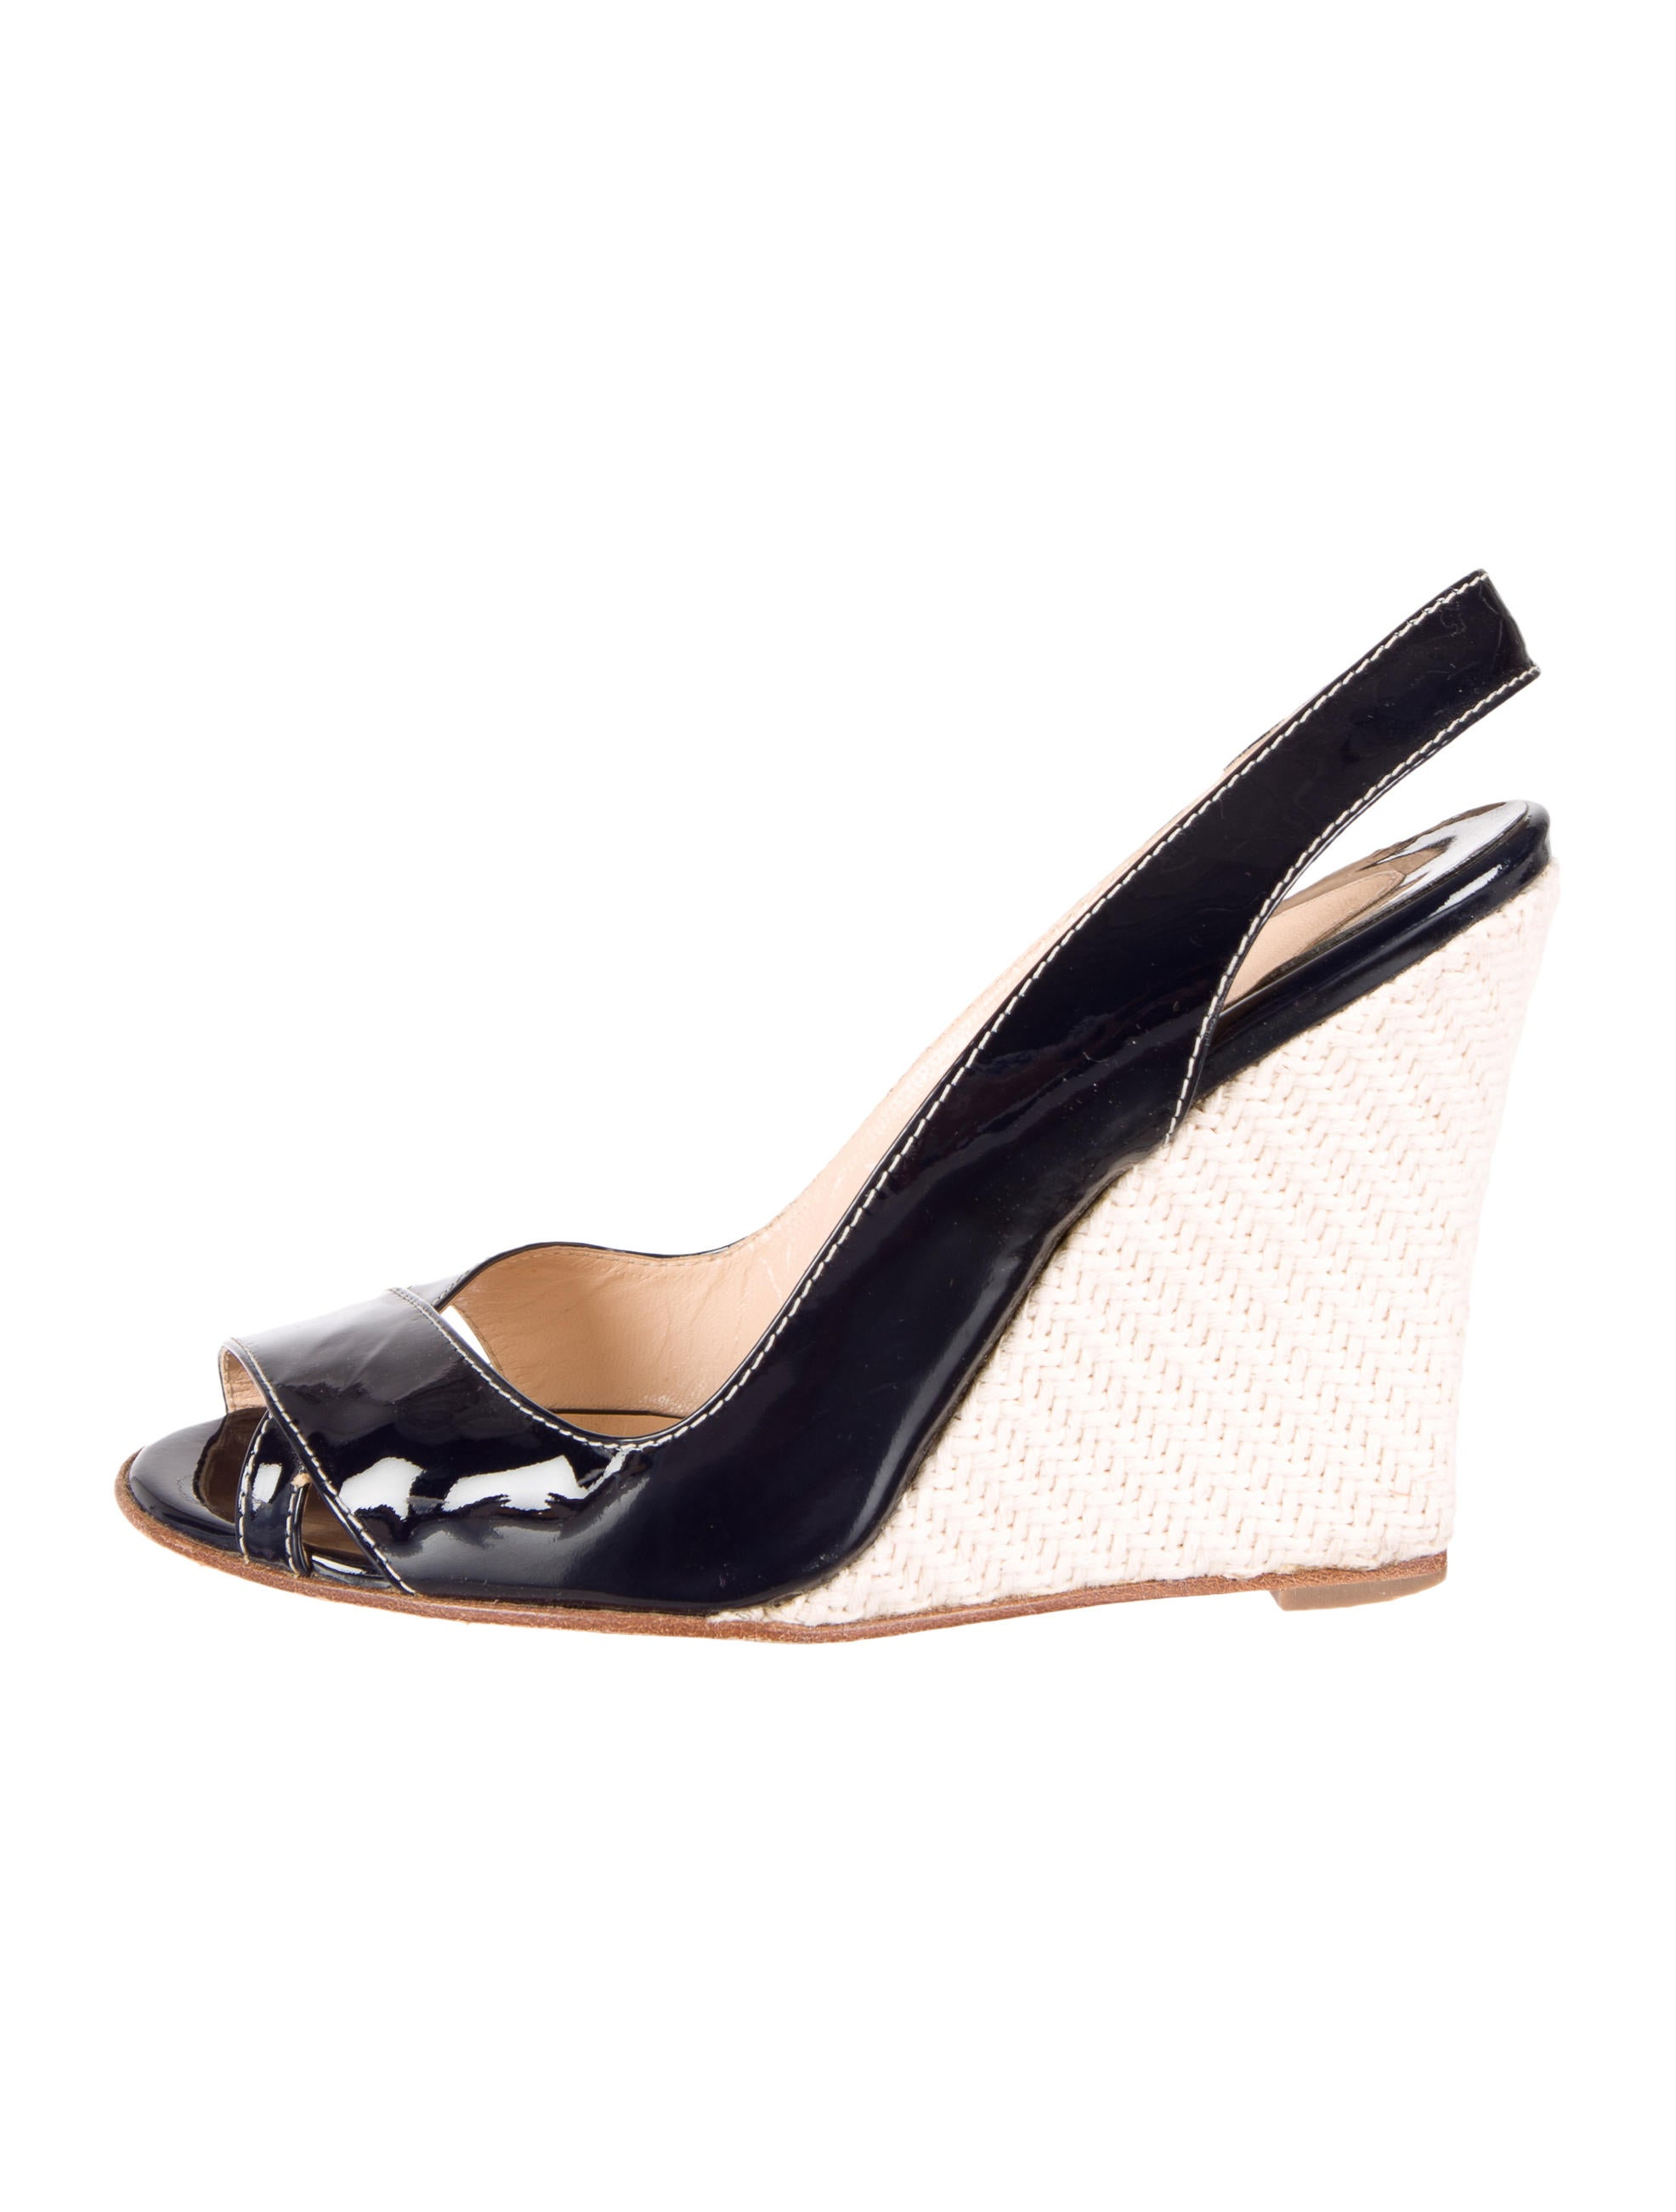 christian louboutin patent leather wedge sandals shoes